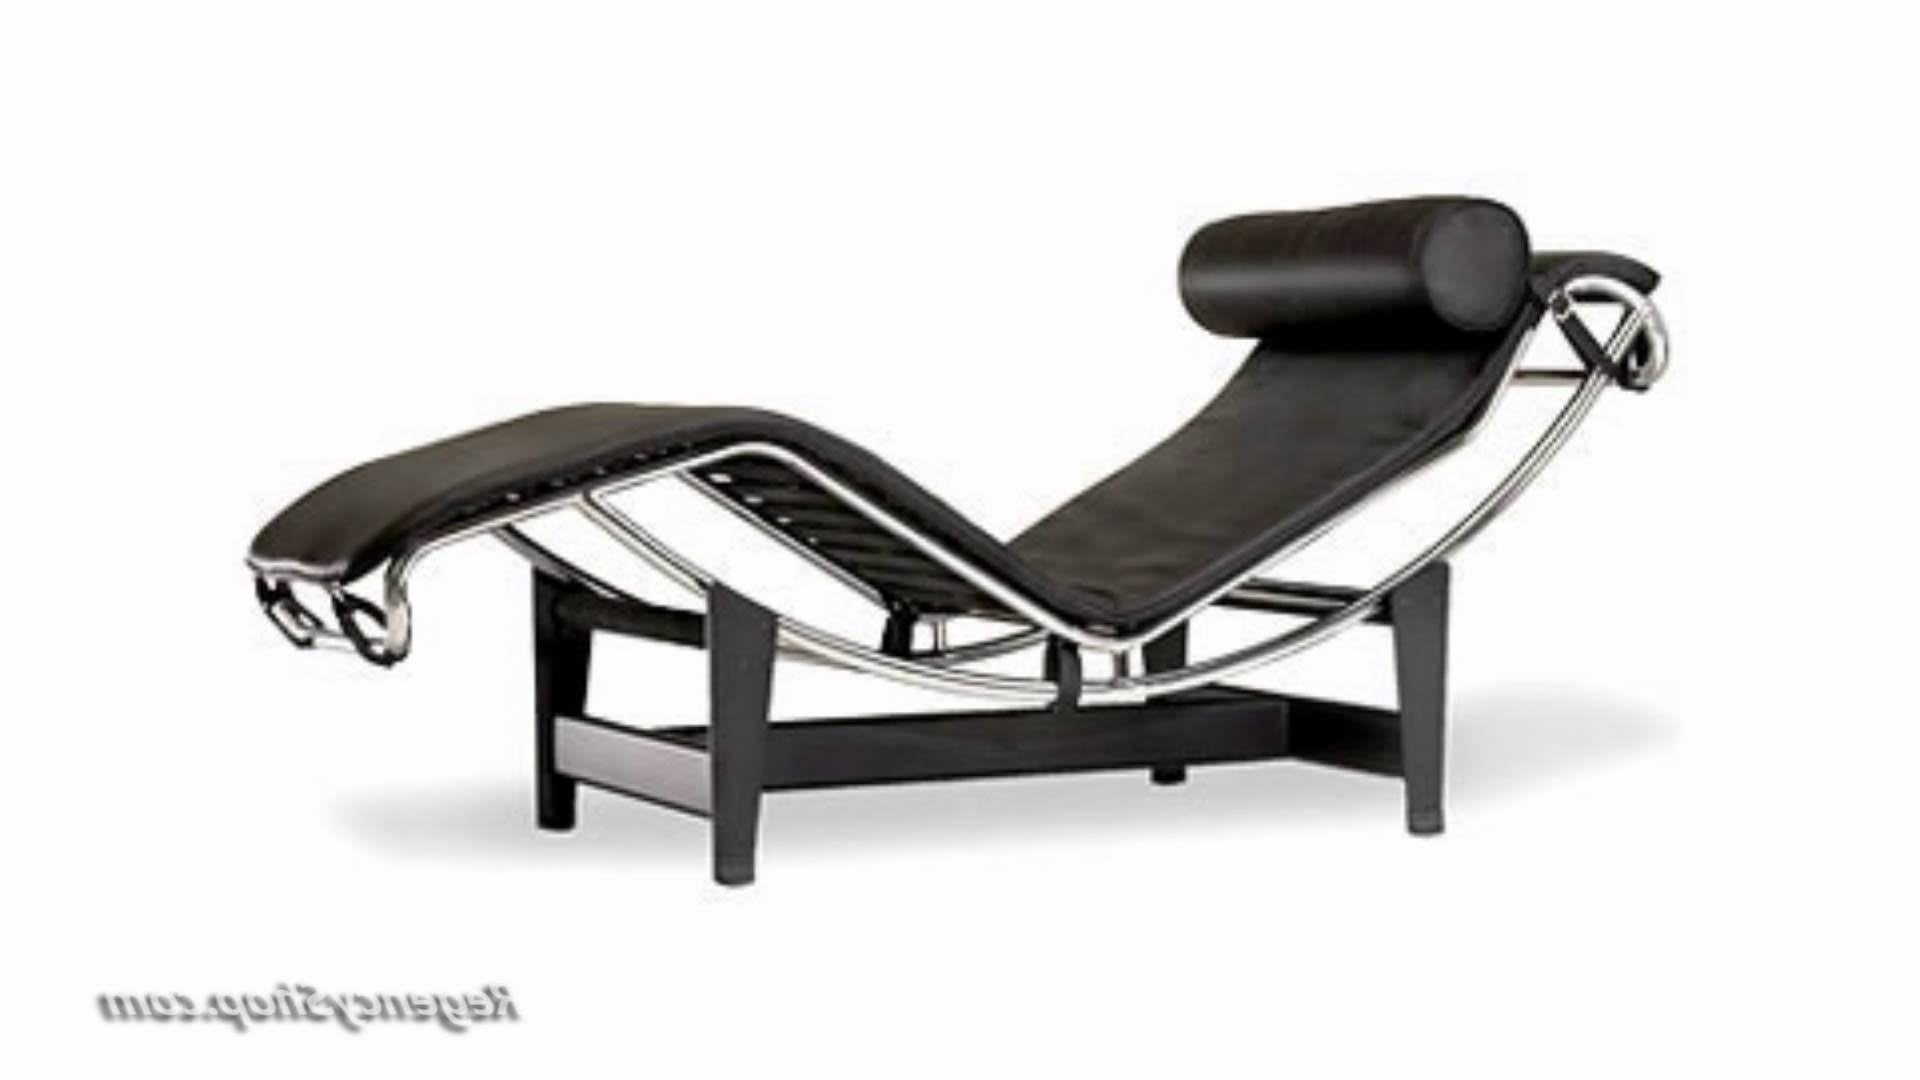 Lc4 Chaise Lounges Regarding Famous Le Corbusier Lc4 Chaise Lounge Chair – Regencyshop – Youtube (View 3 of 15)